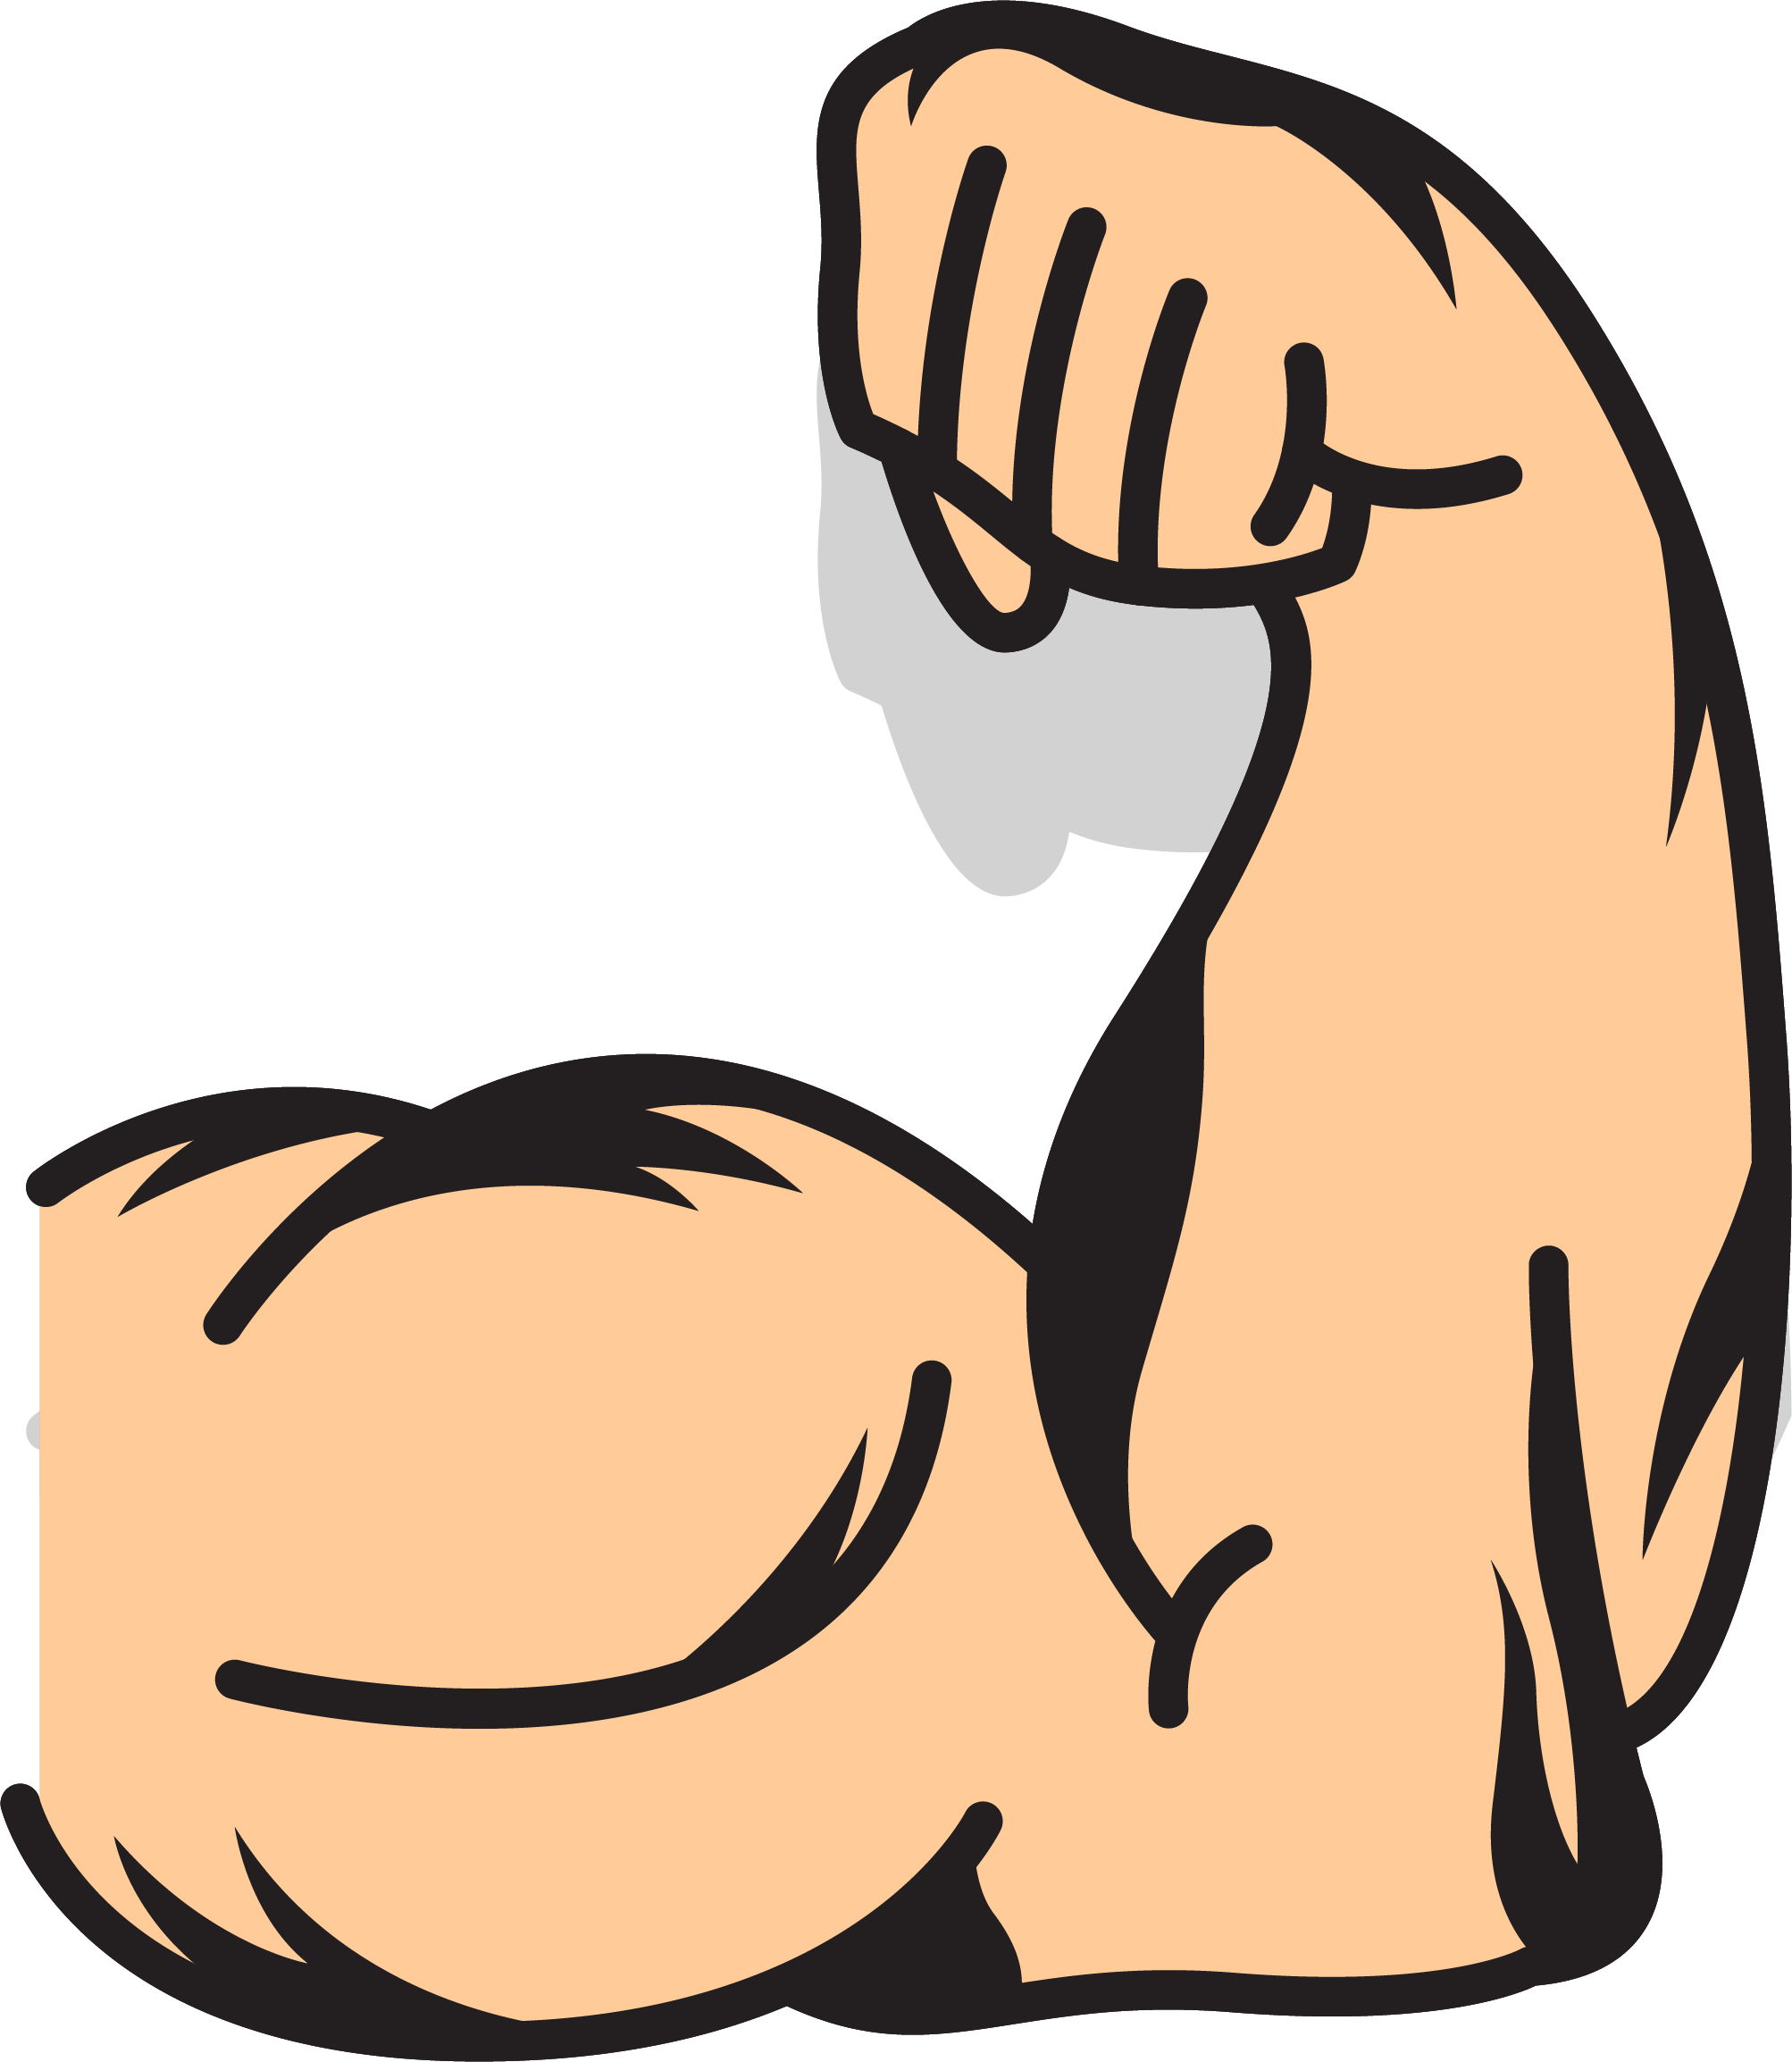 Arms clip art strong. Muscle clipart arm logo